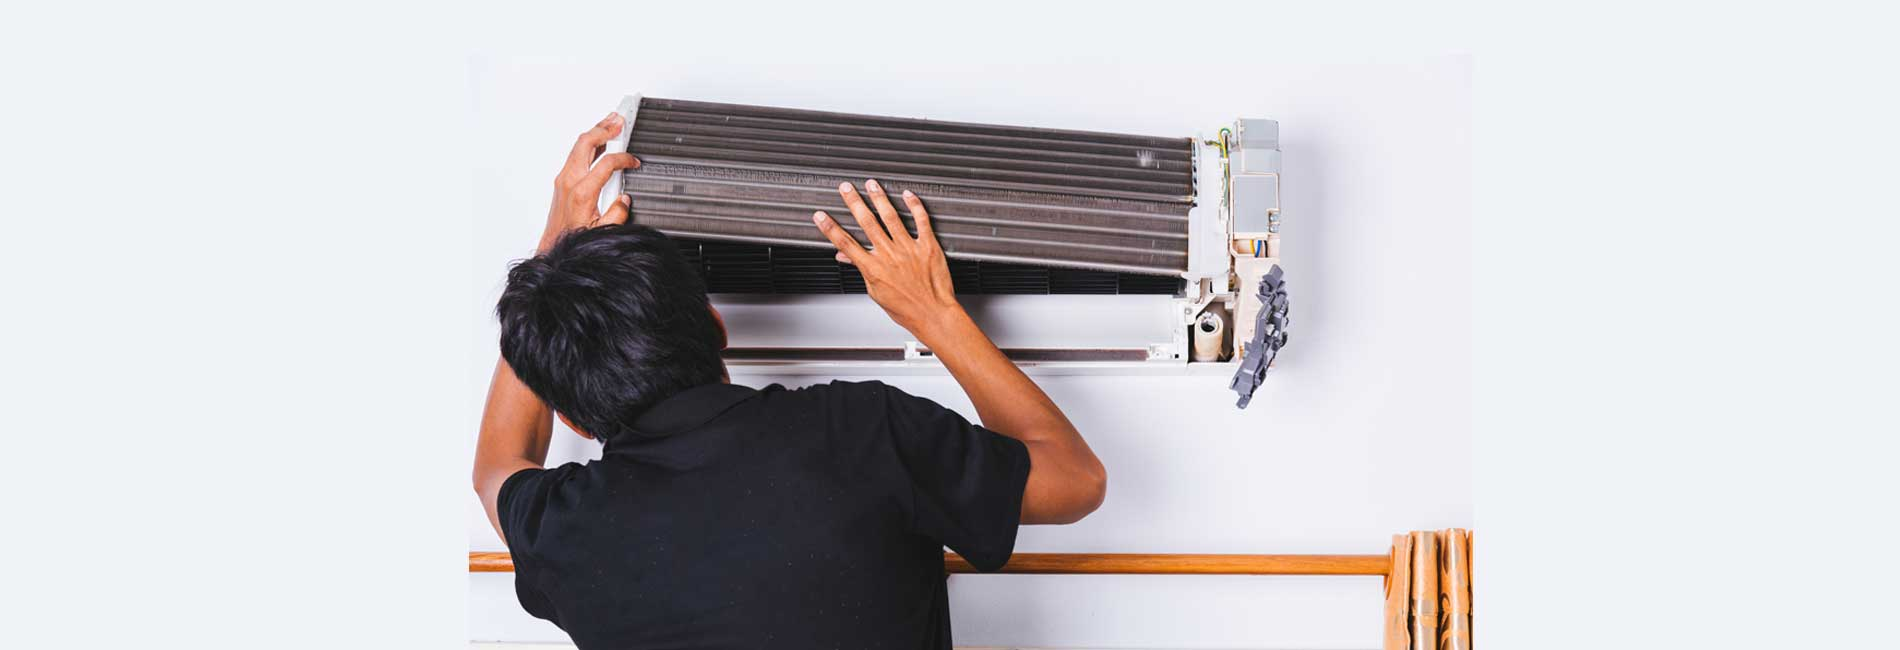 Bluestar Split AC Uninstallation in Kelambakkam